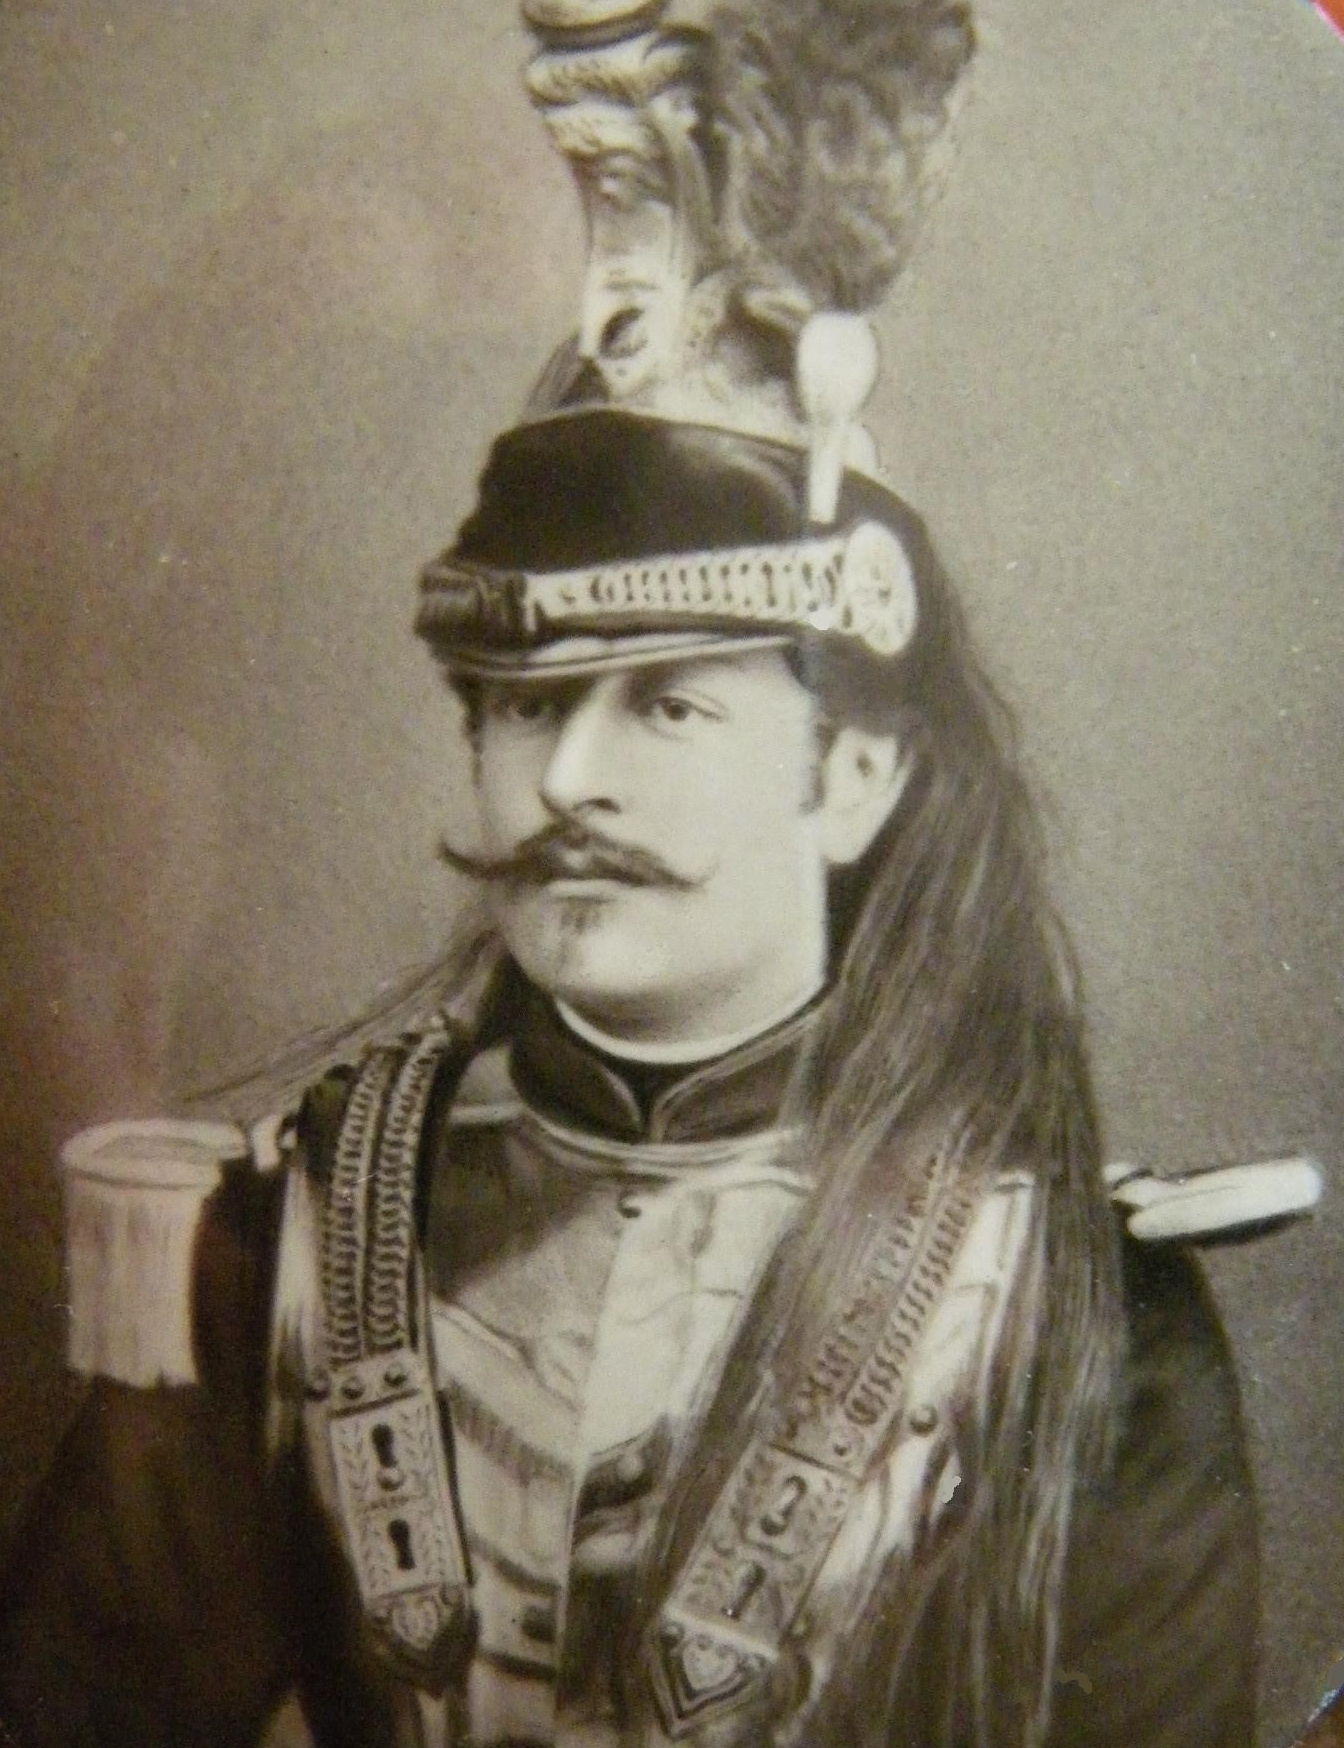 Charles des Ligneris en uniforme des Dragons (photo non datée)